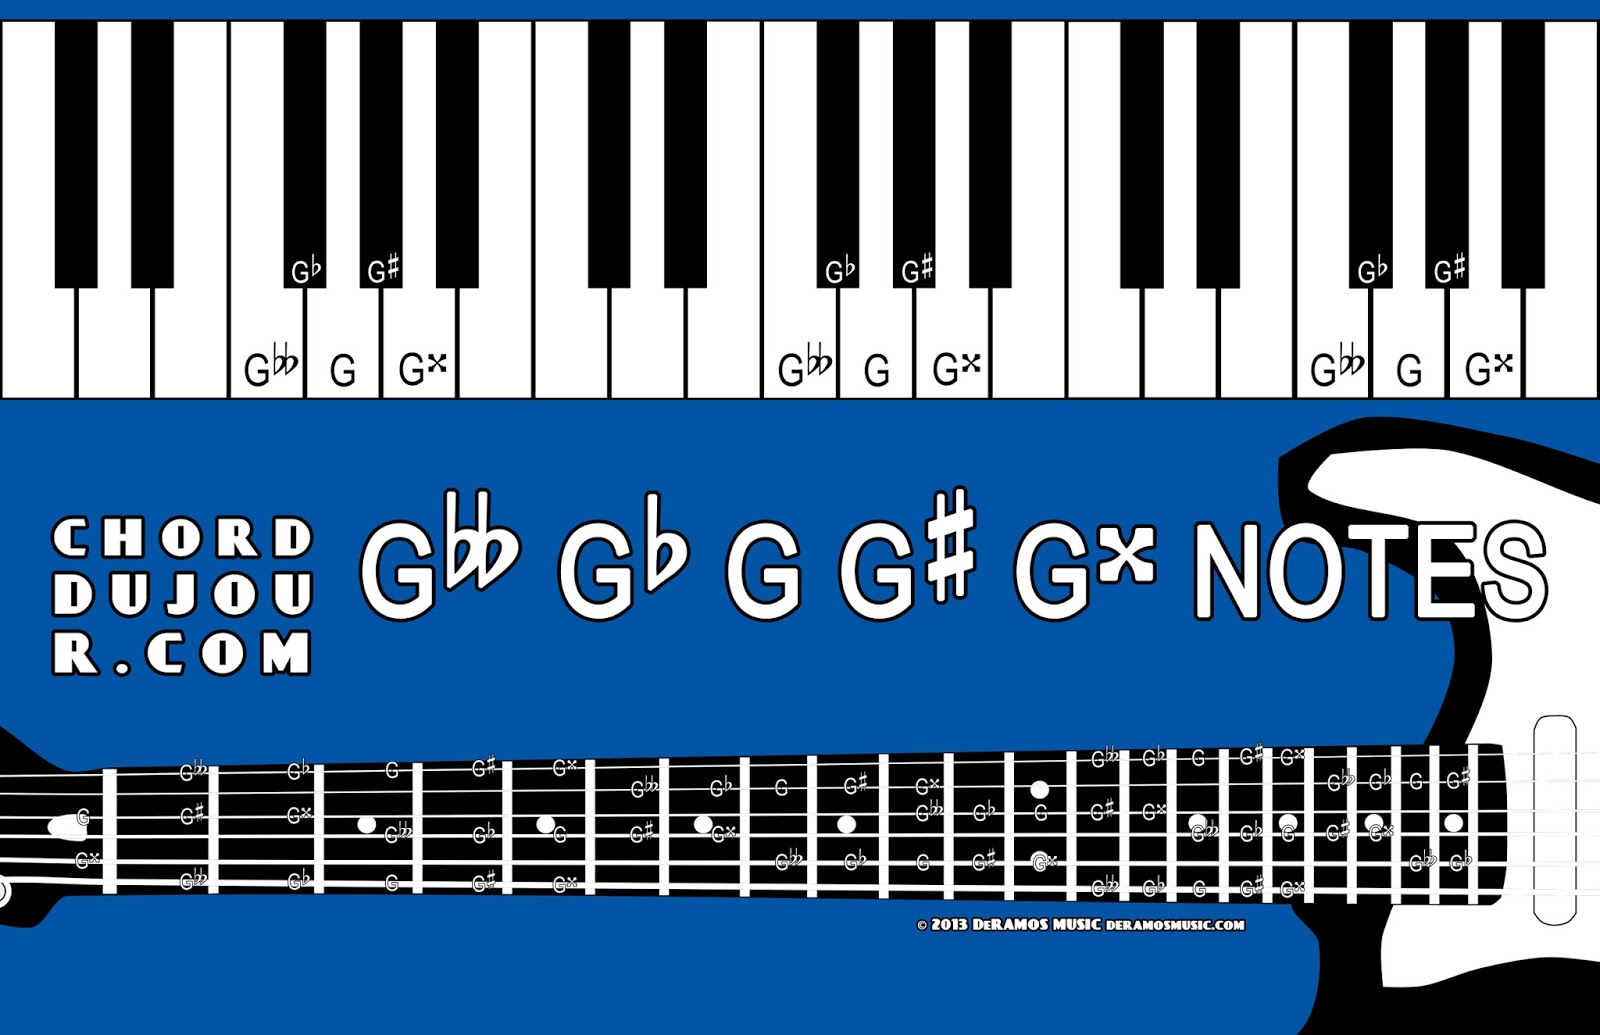 G Chord Piano Chord Du Jour Dictionary G Note